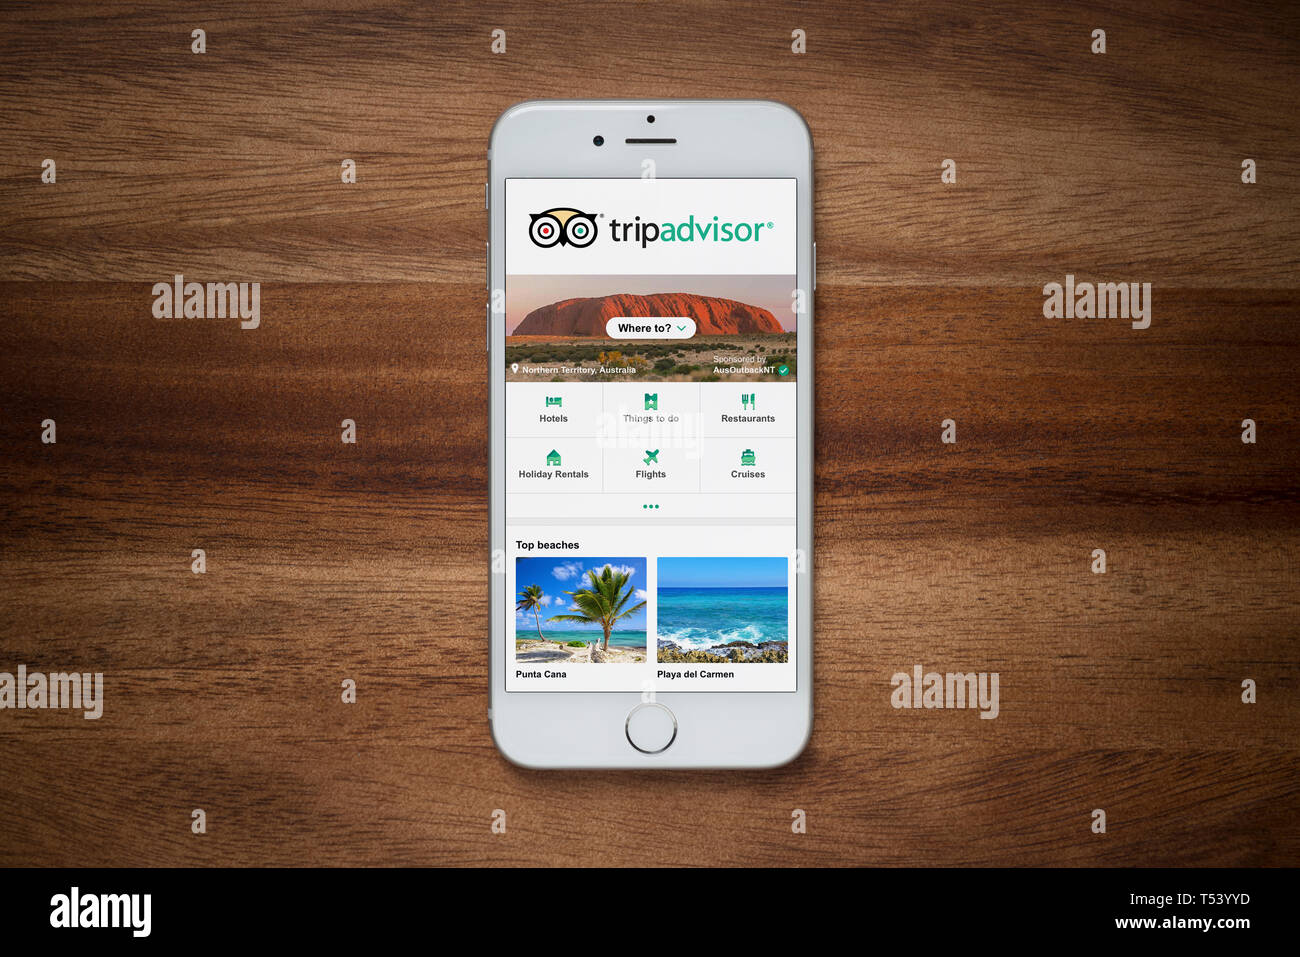 An iPhone showing the Trip Advisor website rests on a plain wooden table (Editorial use only). - Stock Image